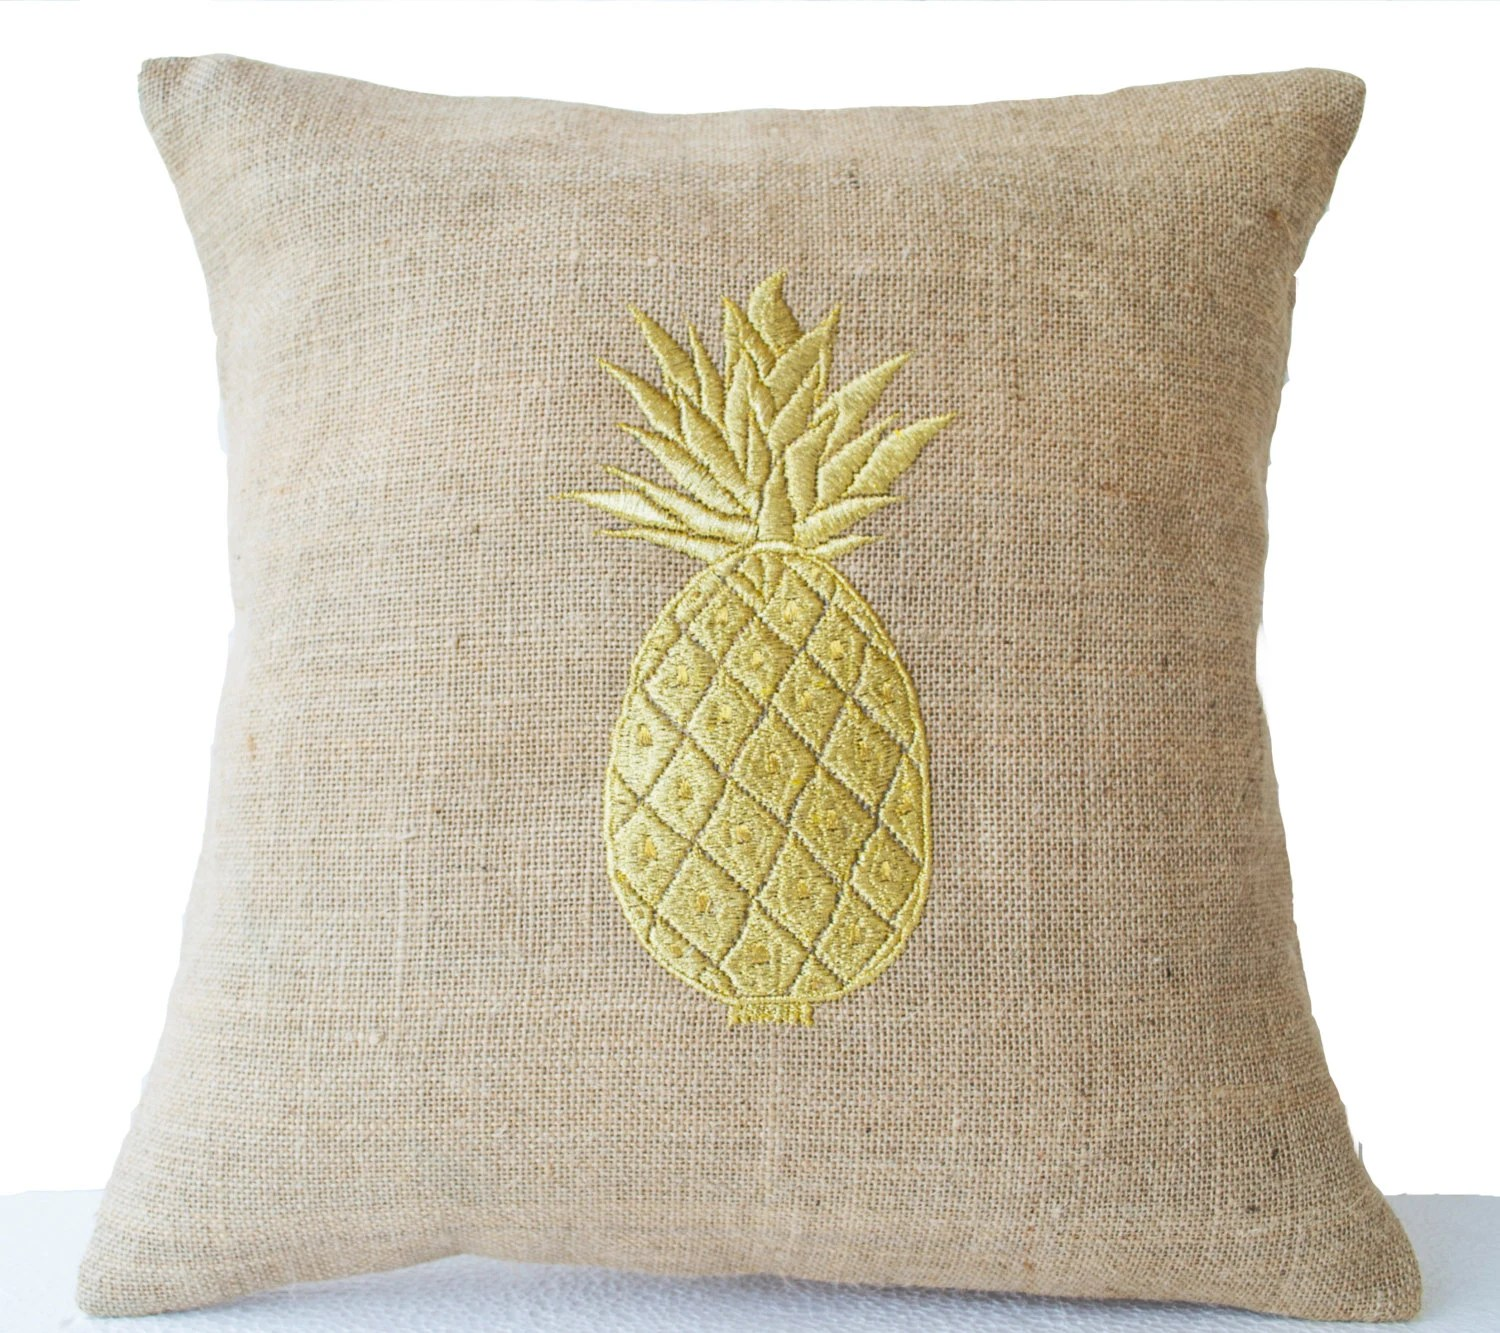 Burlap Chair Cushions Burlap Pillow Covers With Pineapple Embroidered Gold Pillows